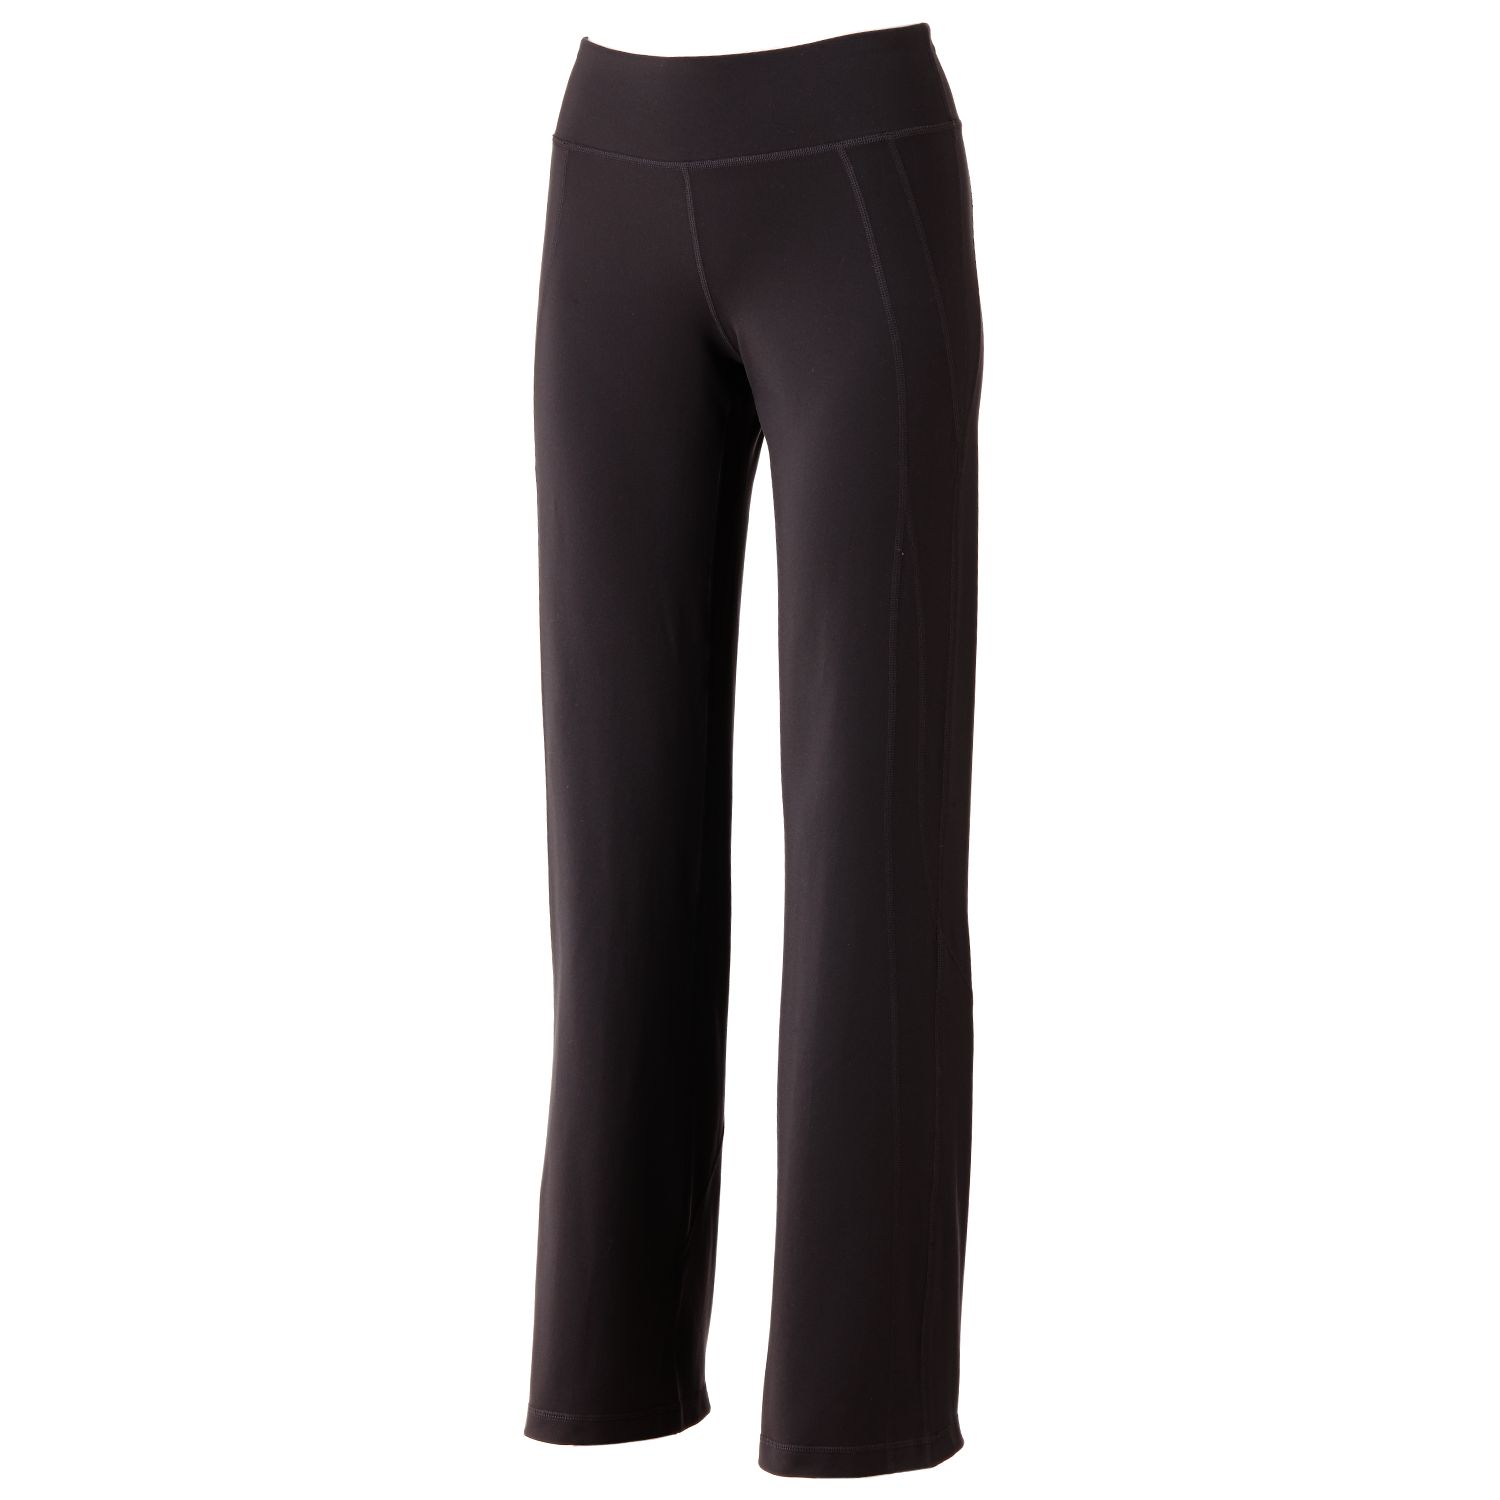 Fit And Flare Yoga Pants